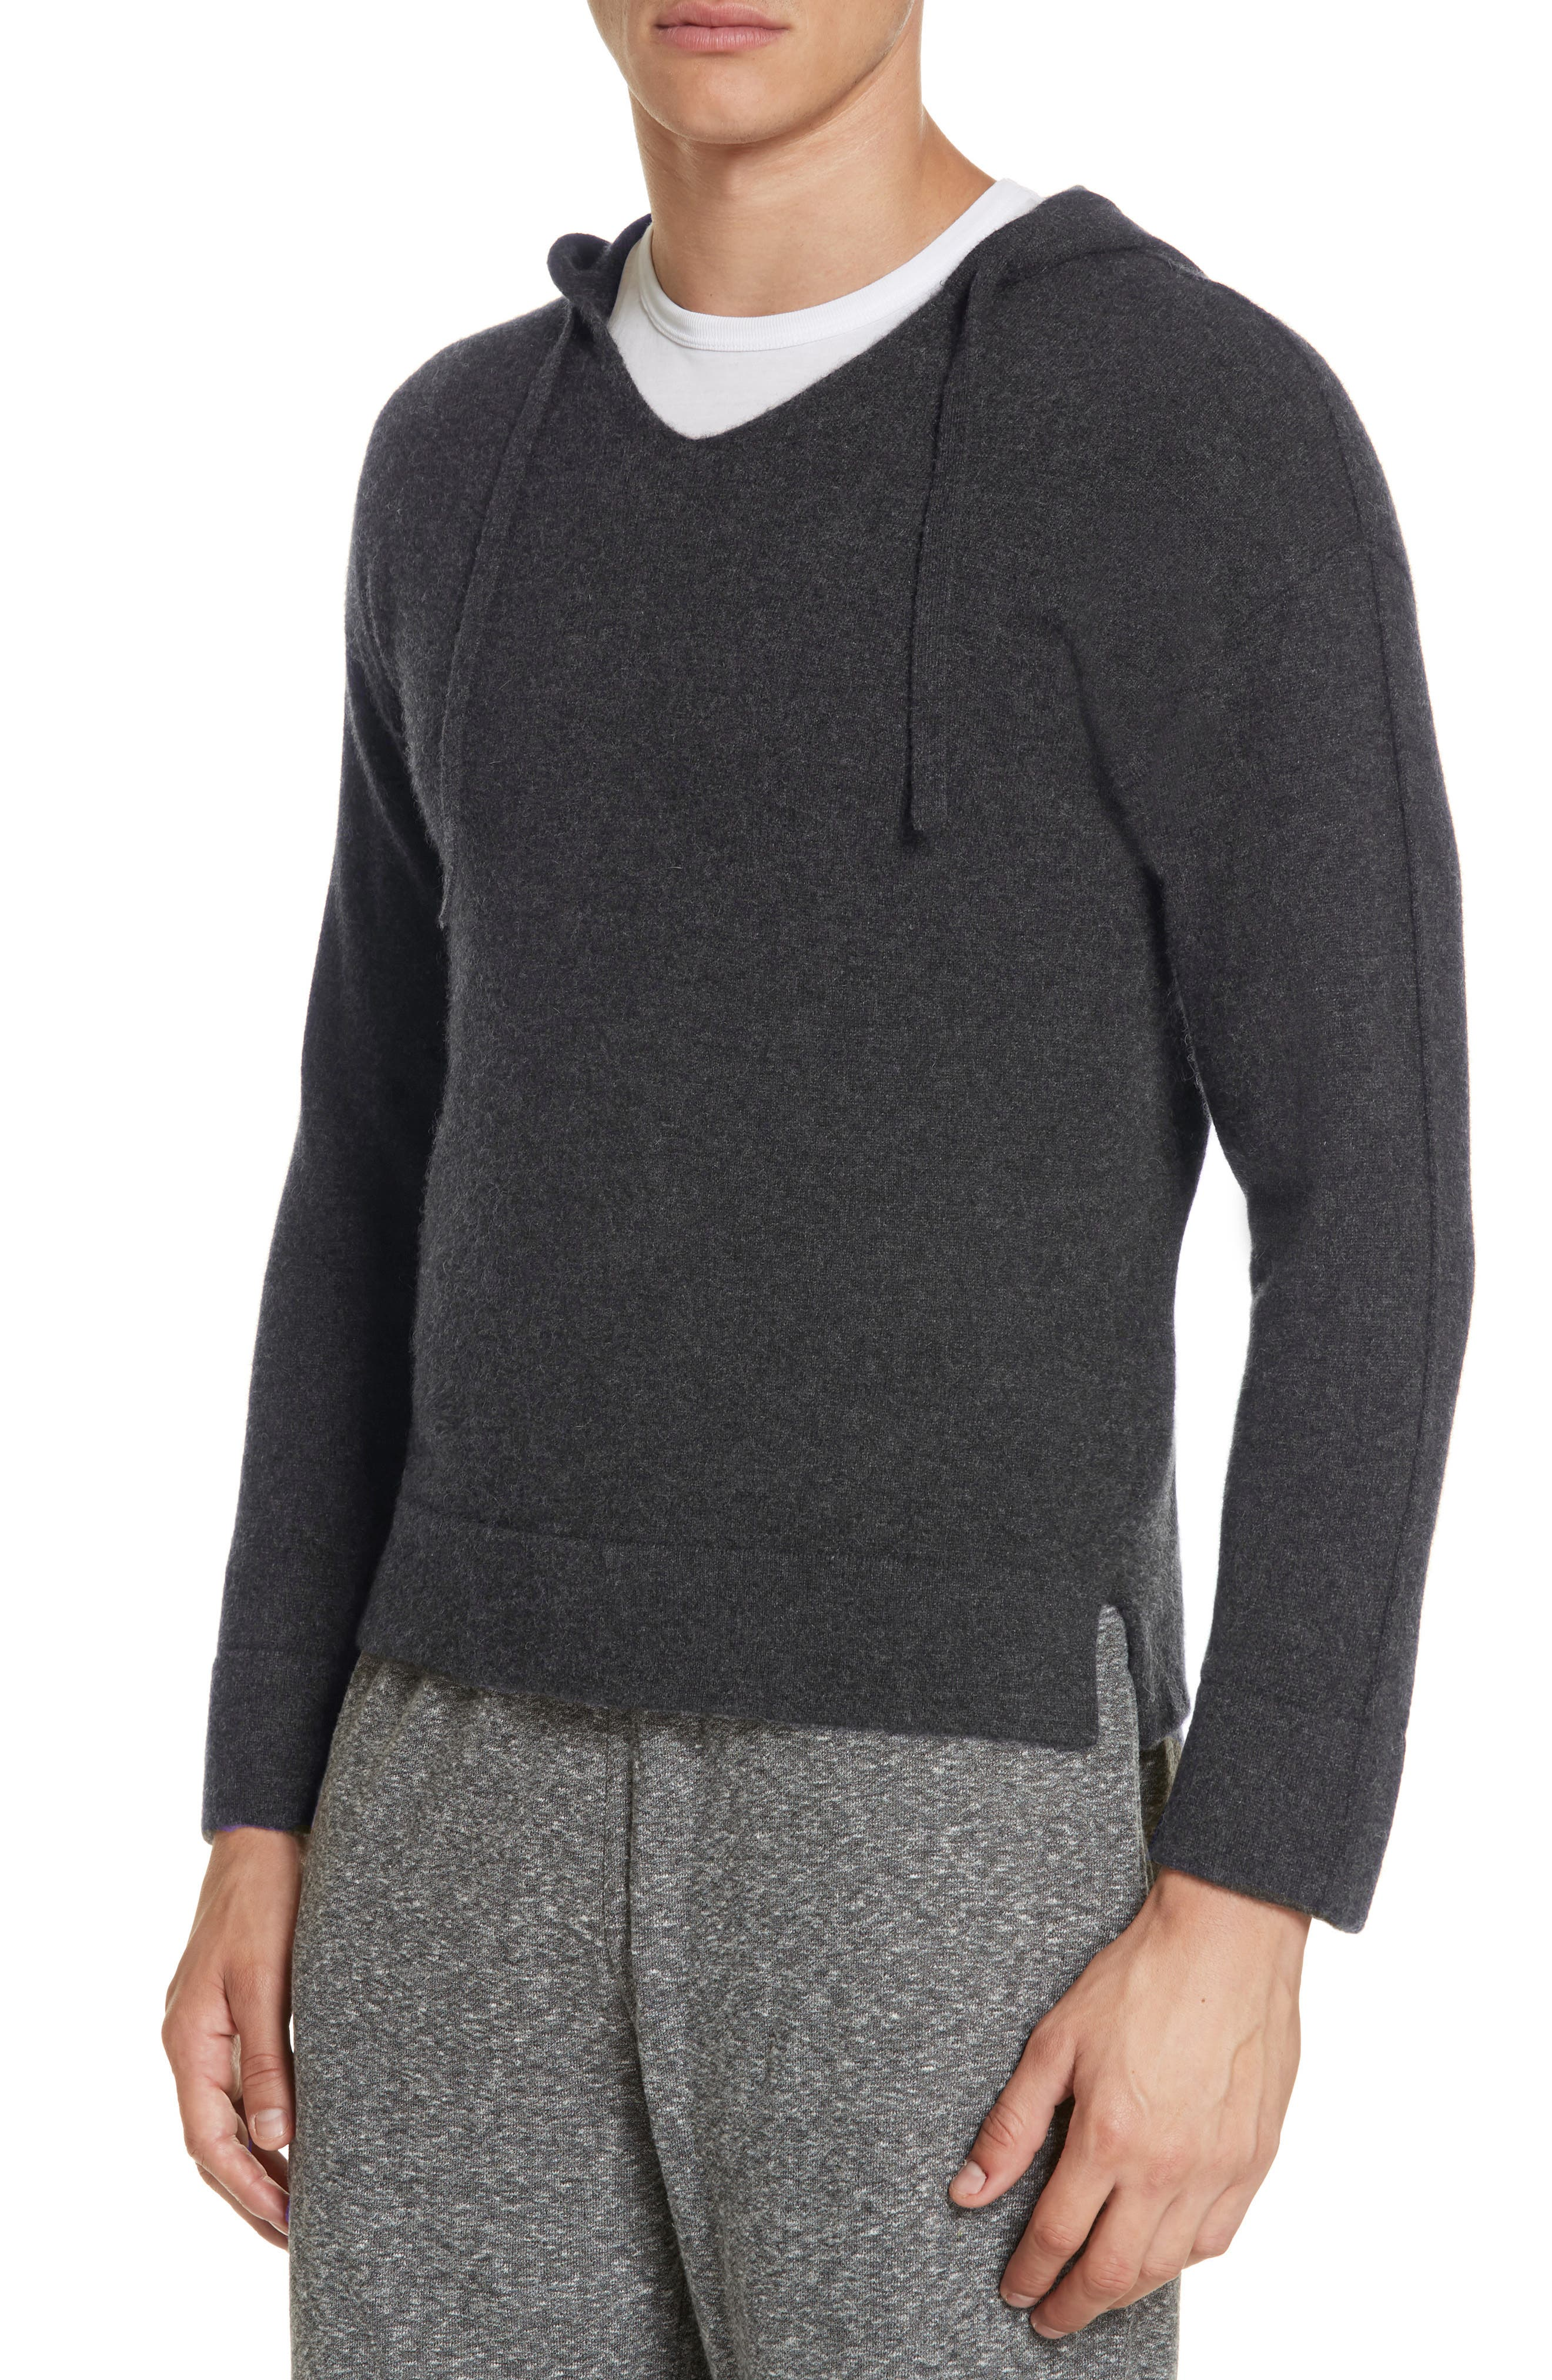 Jamie Sunset Cashmere Hooded Sweater,                             Alternate thumbnail 4, color,                             CHARCOAL